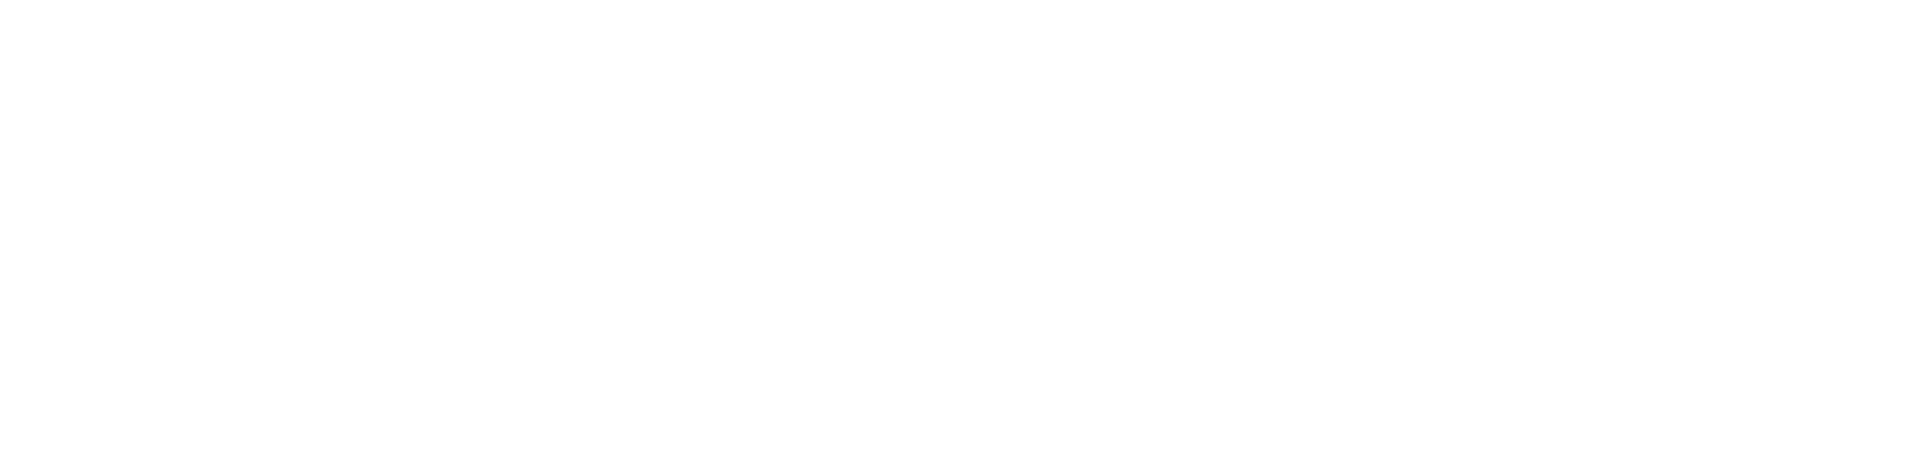 Evander Lipps - Videography & Photography